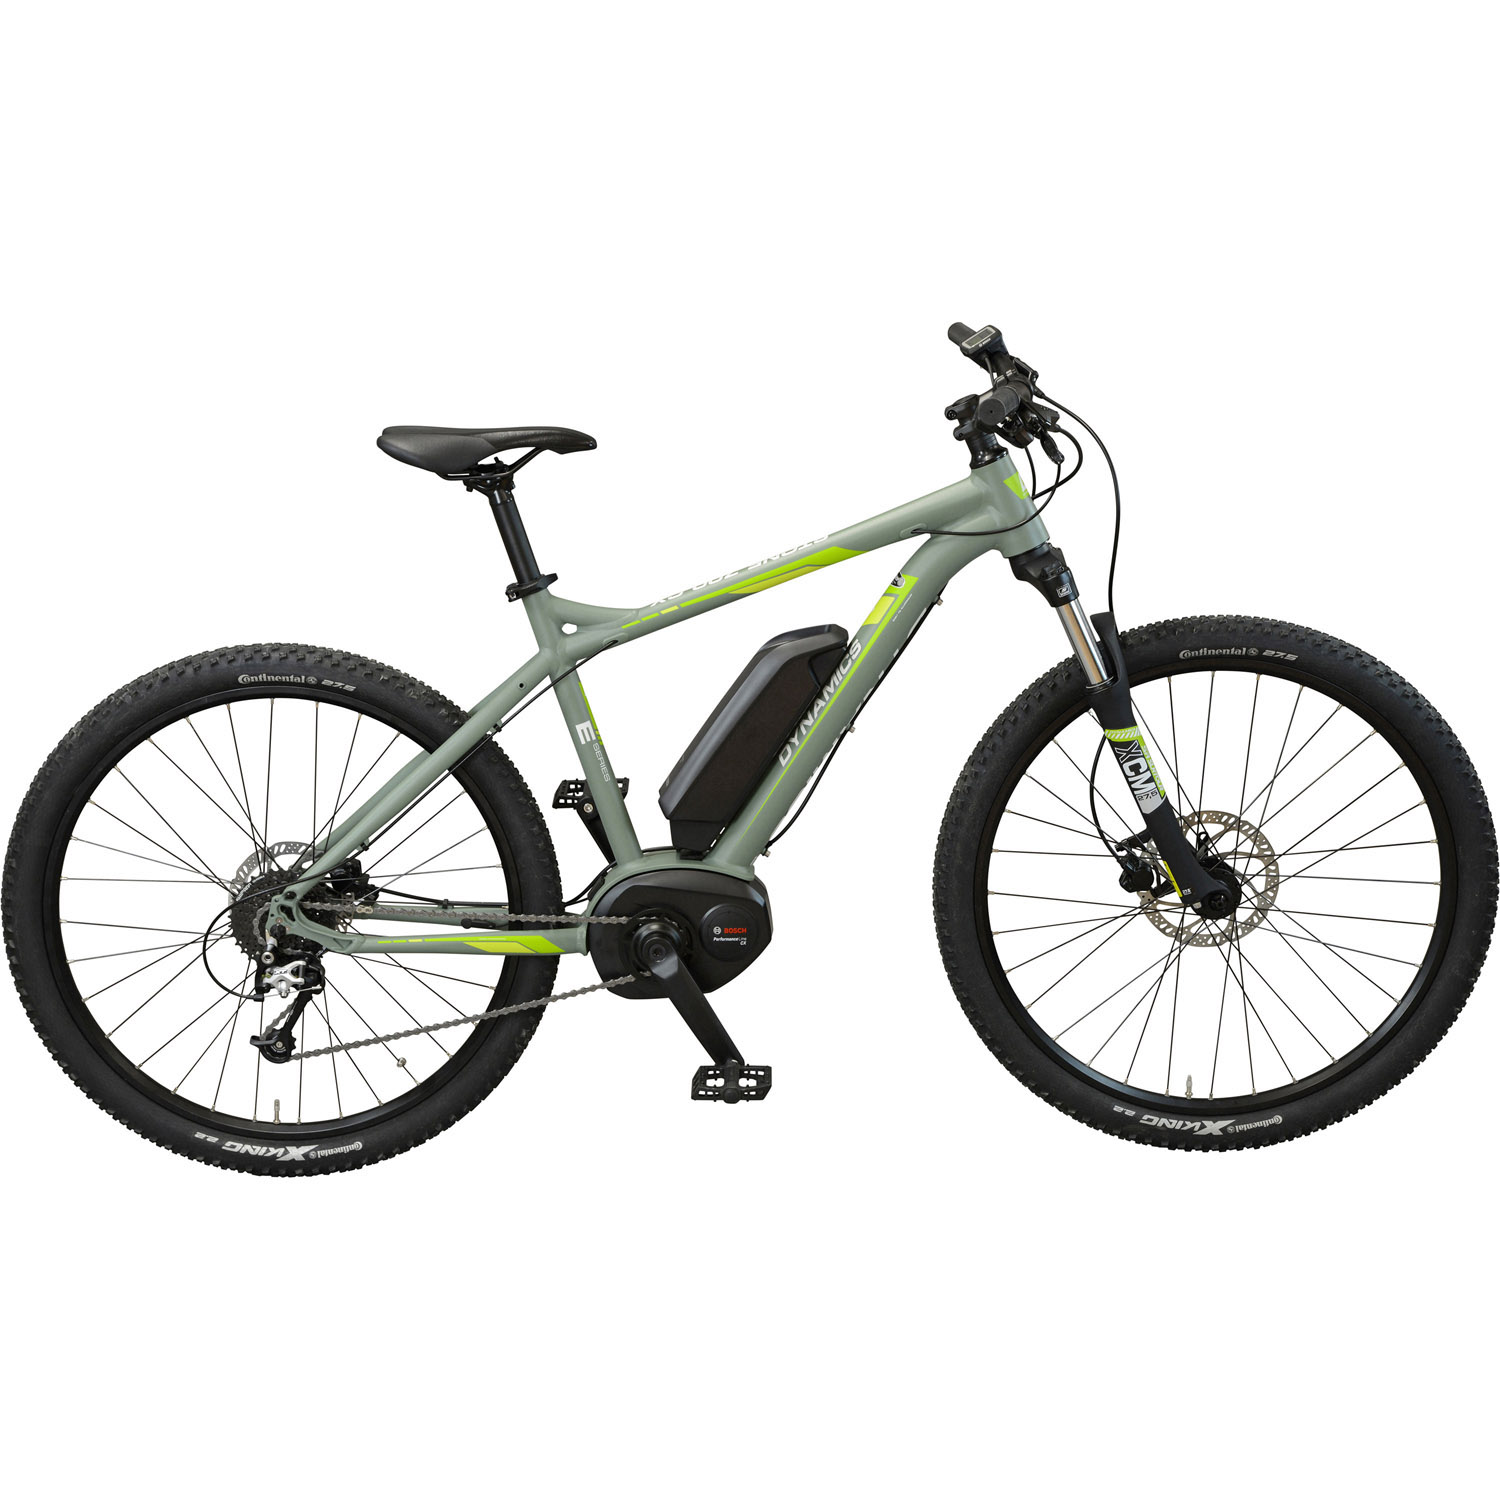 dynamics 700 cx5 e mountainbike 27 5 zoll 44 cm online. Black Bedroom Furniture Sets. Home Design Ideas